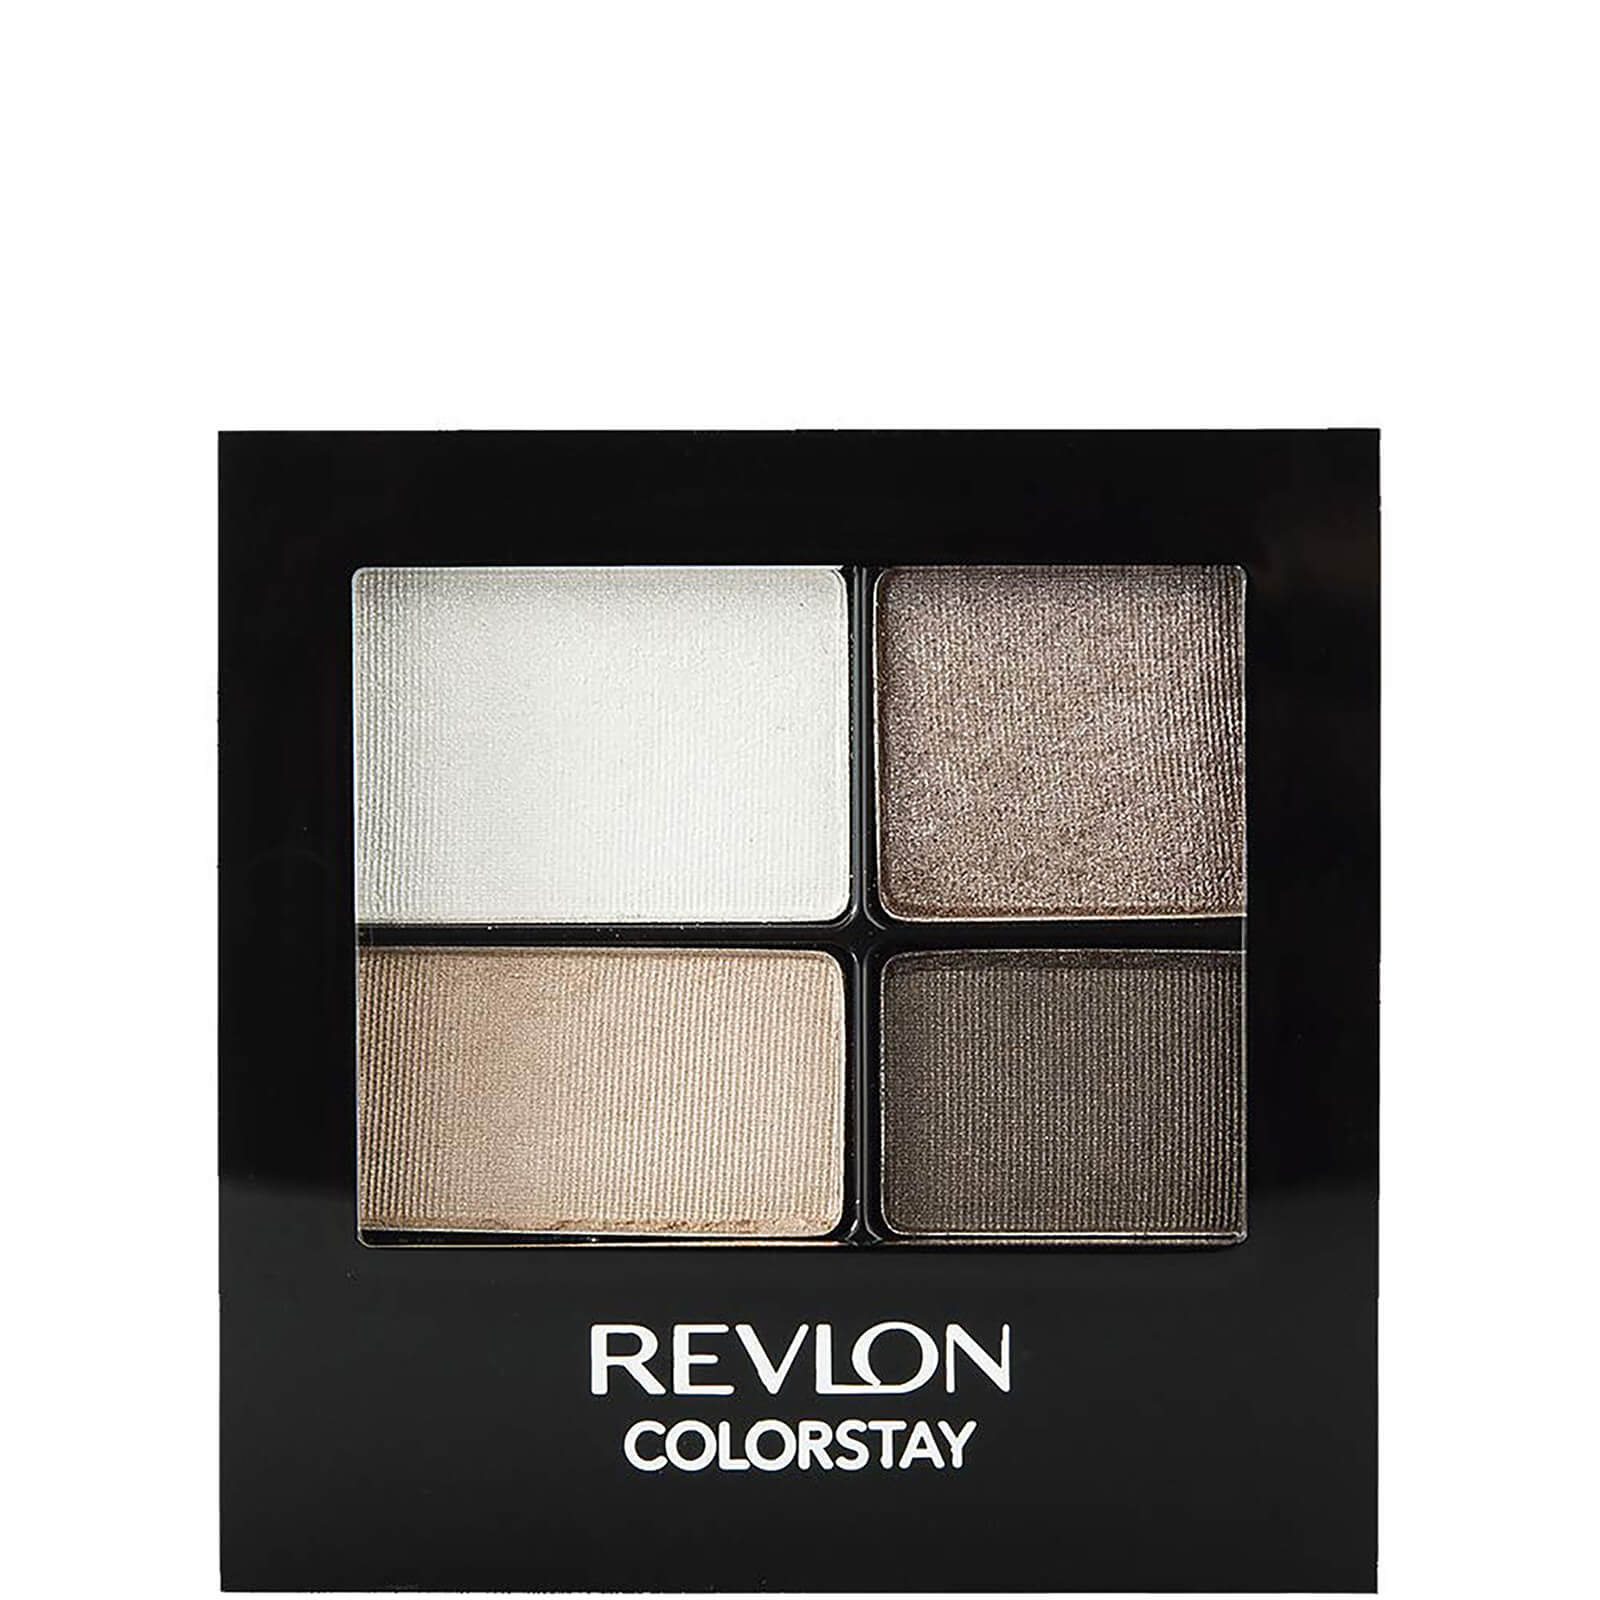 Image of Revlon Colorstay 16 Hour Eyeshadow Quad - Moonlit